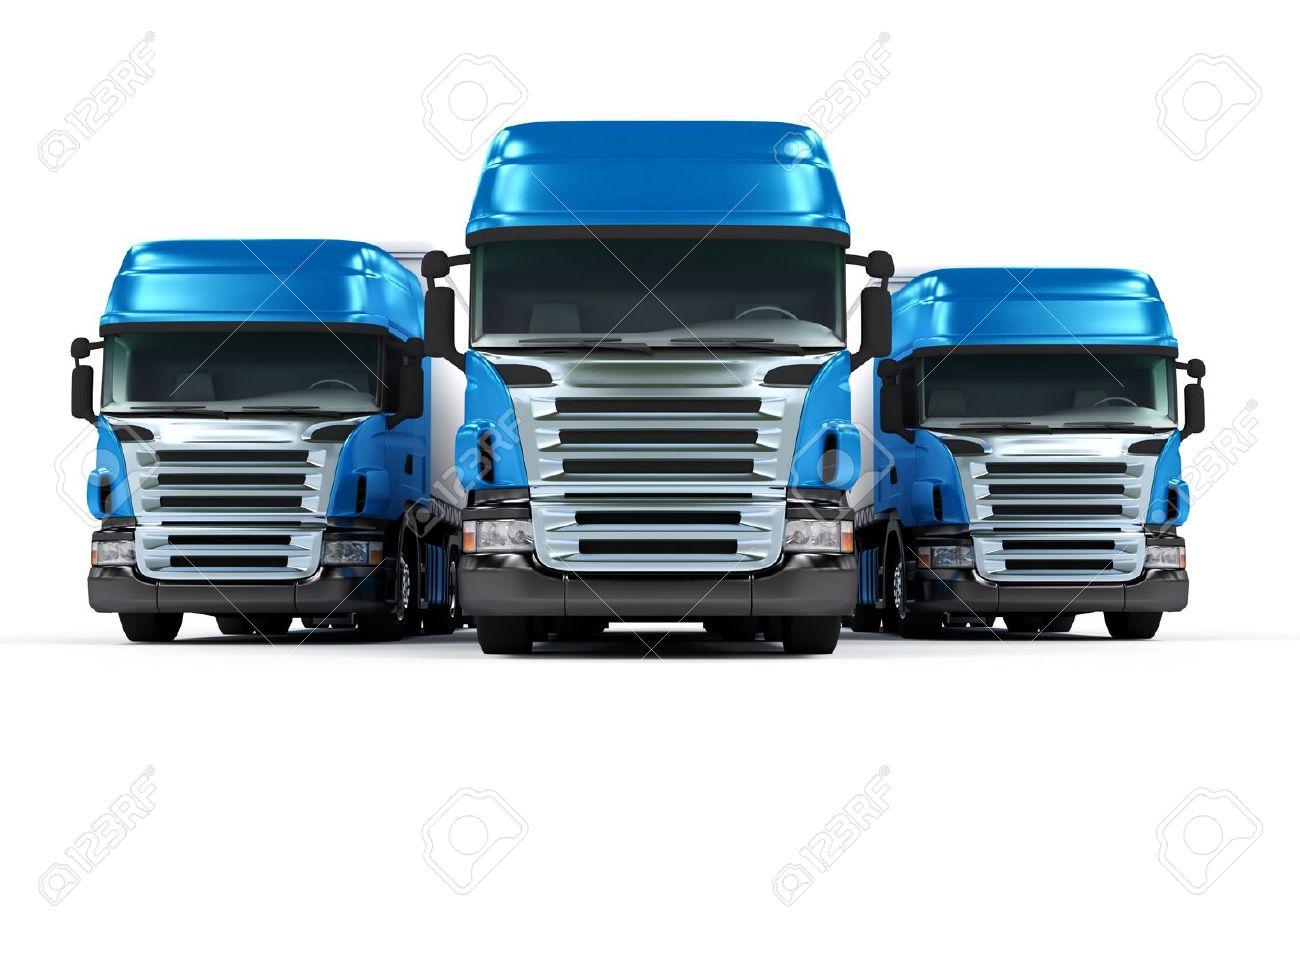 Some blue trucks isolated on white background Stock Photo - 8624865